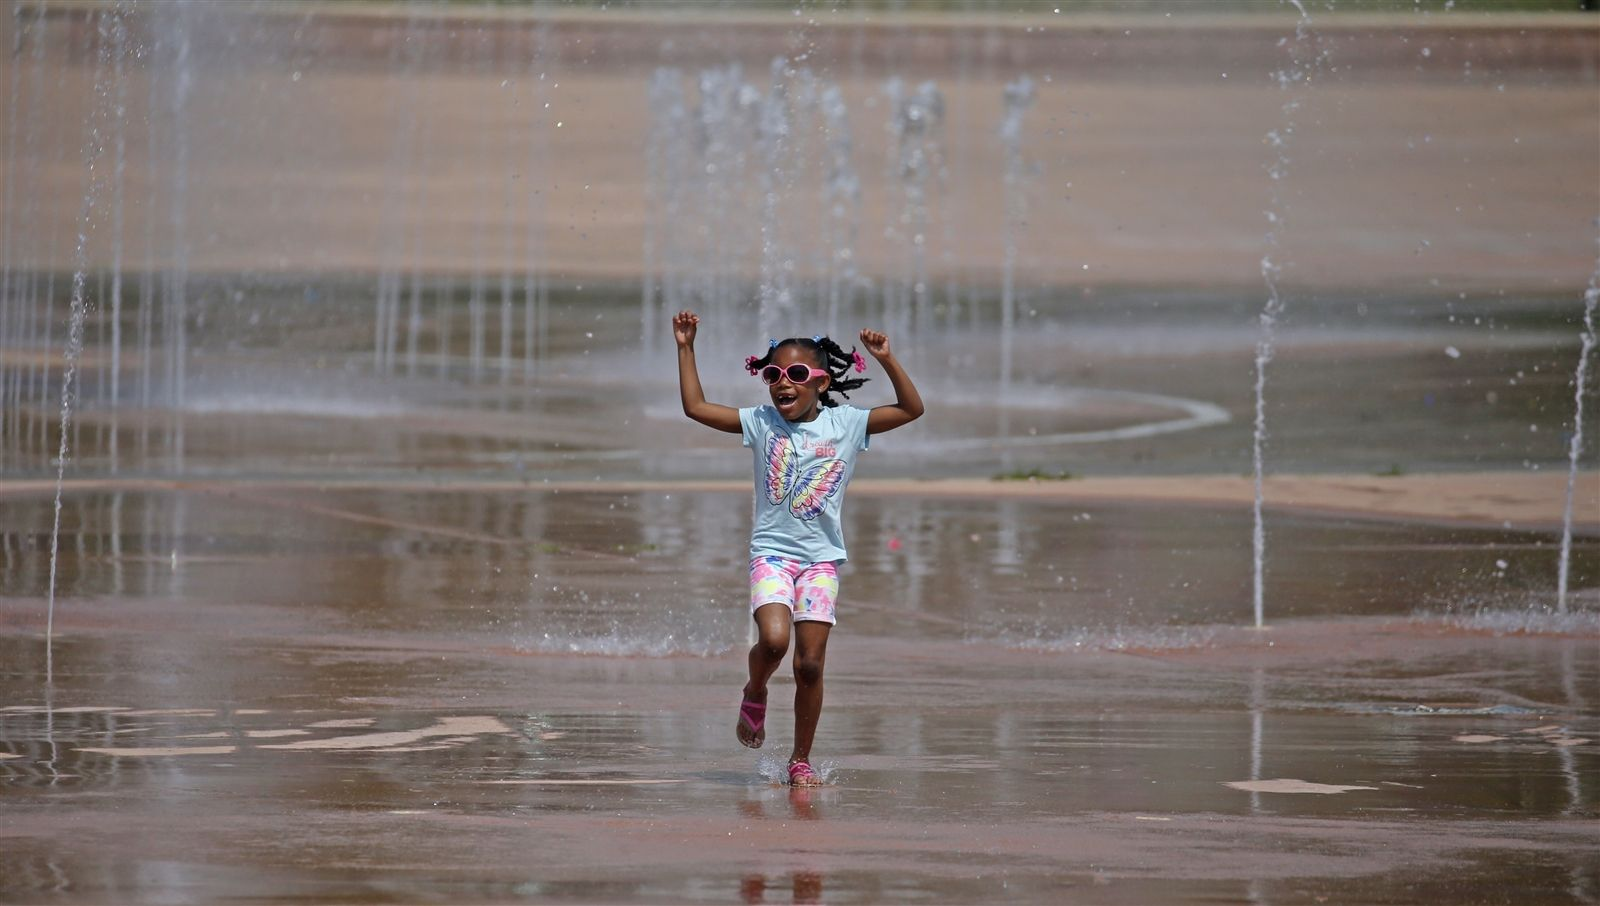 This little girl loves the park's water features.